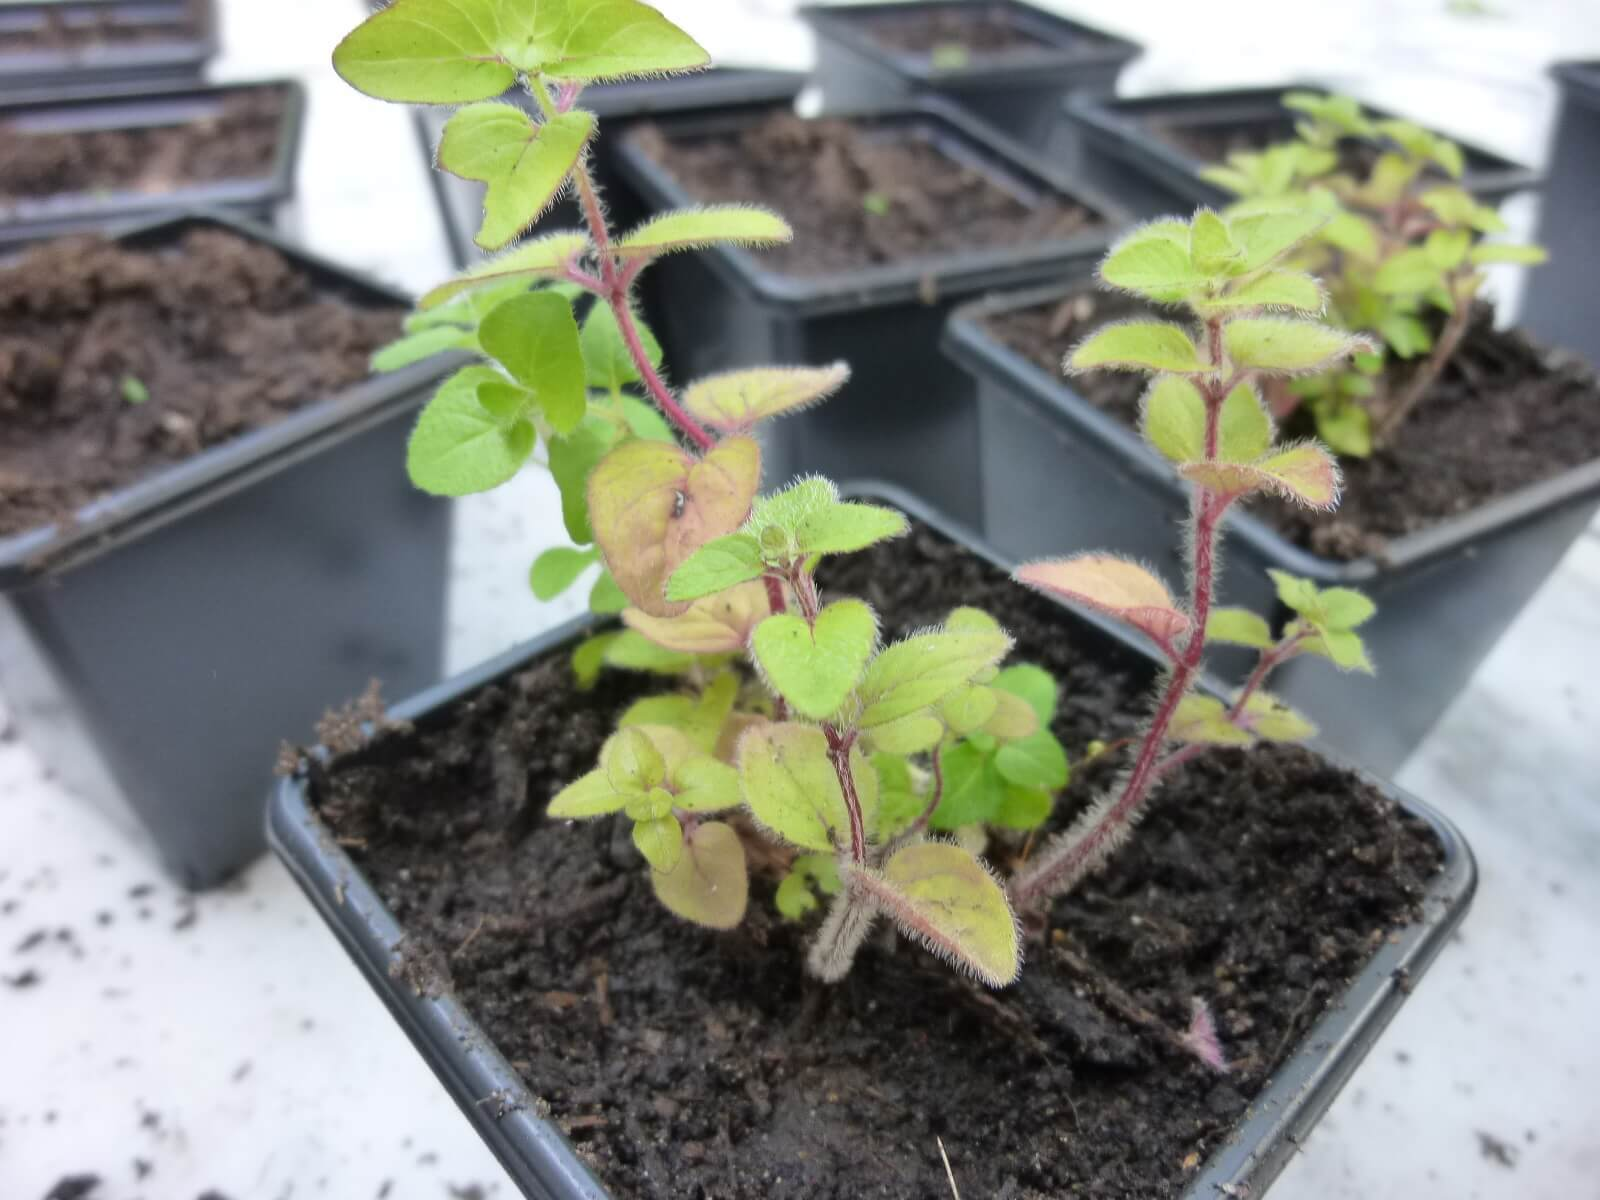 Substitutes for bay leaf, Oregano